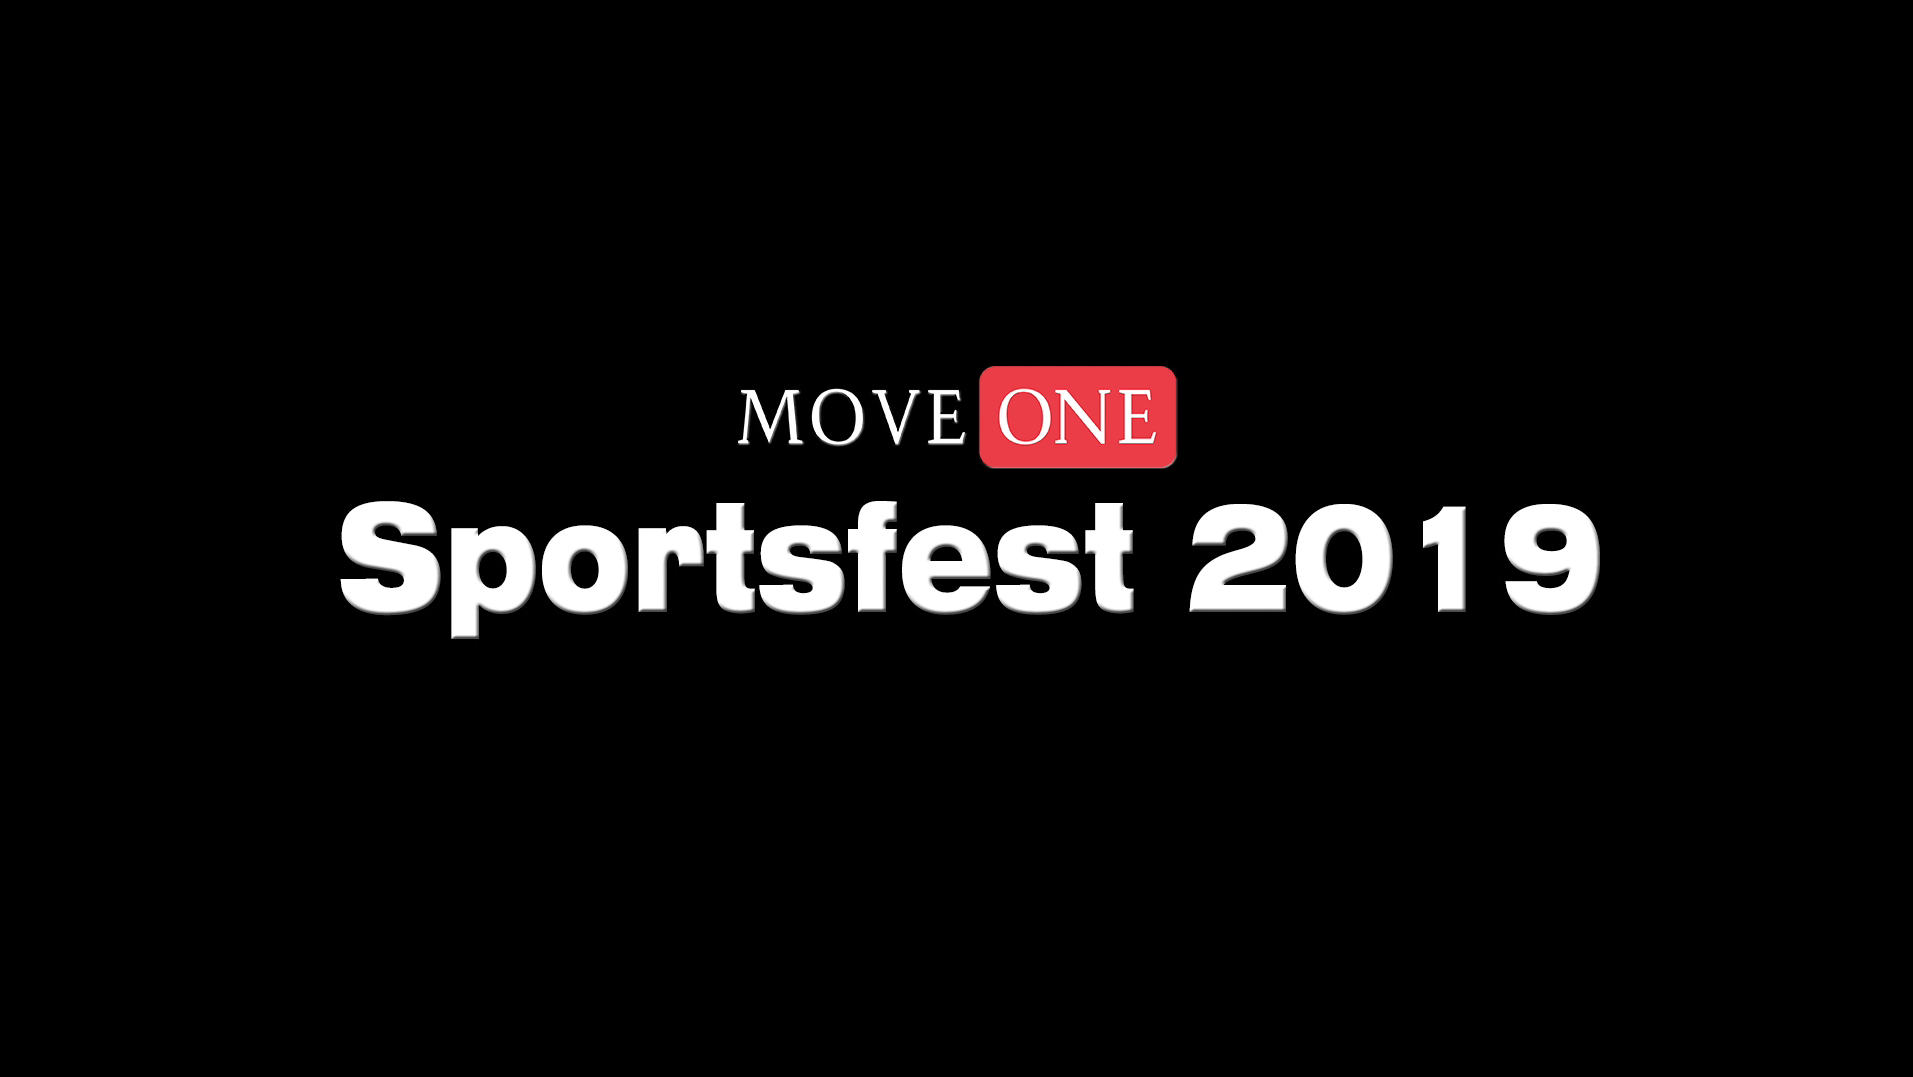 Move One Sportsfest 2019